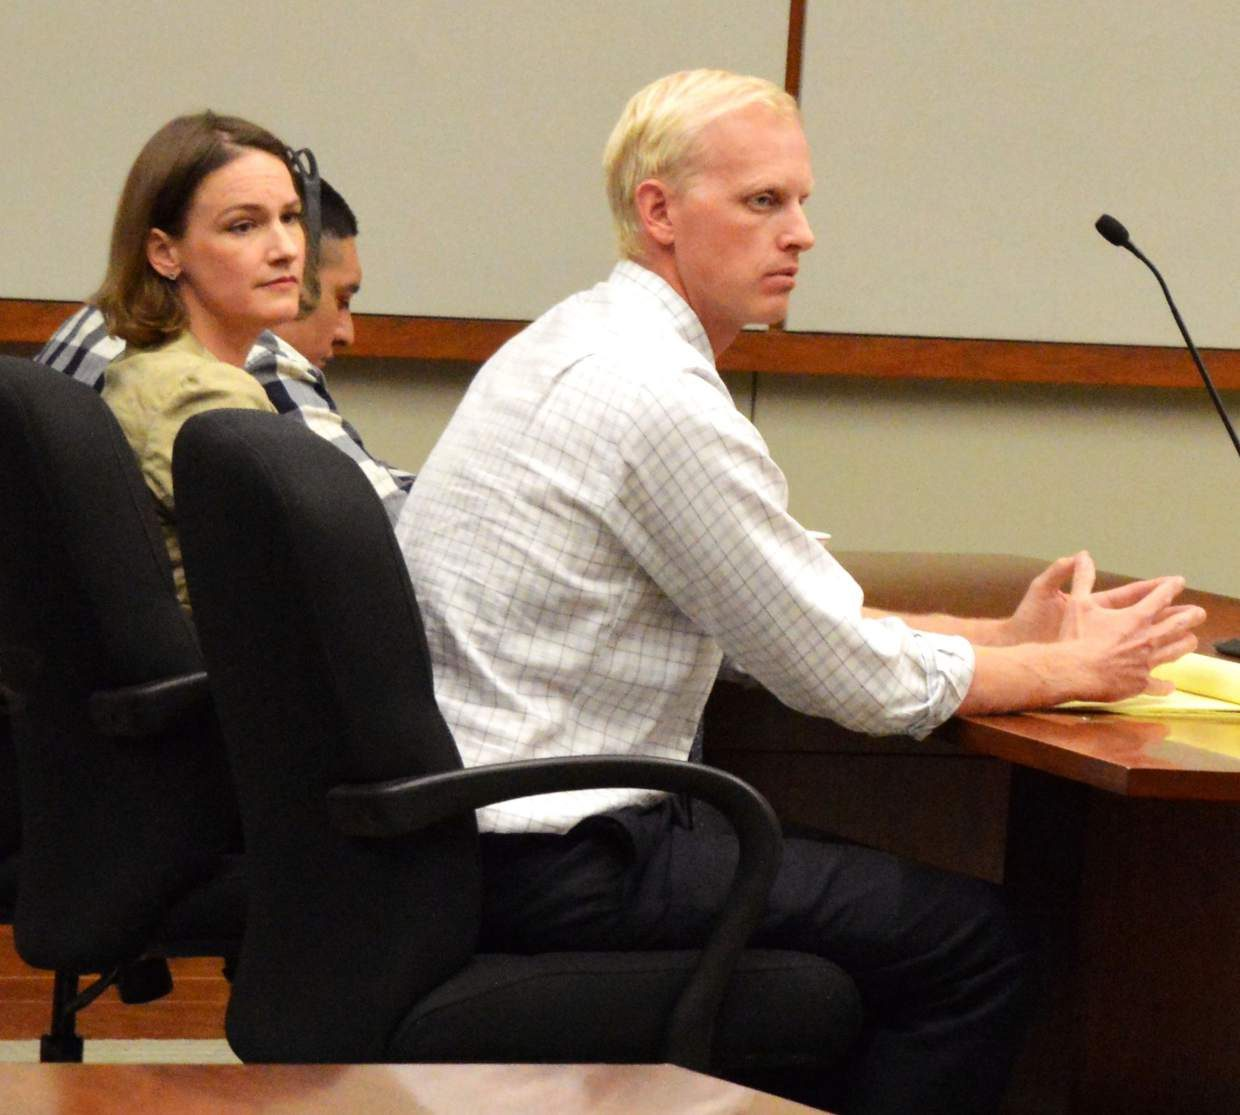 Defense attorneys Thea Reiff and Reed Owens convinced a jury to find Williams Amaya not guilty by reason of insanity.